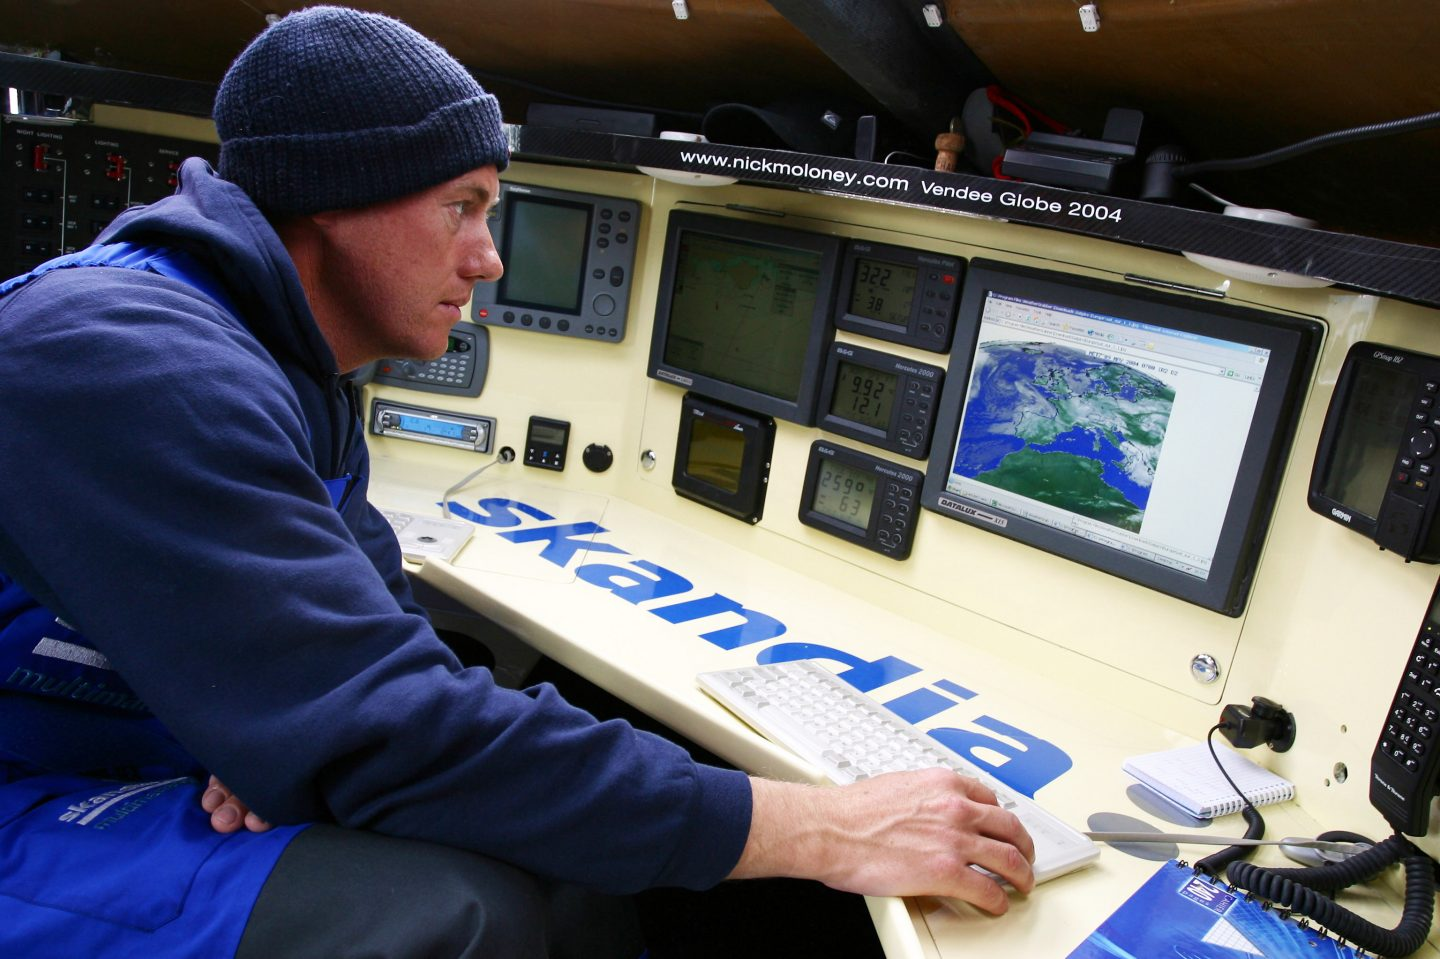 A sailor sitting in front of screens and navigations. Nick Moloney, Skandia, sailing, career, success, preparation, mindset, GamePlan A